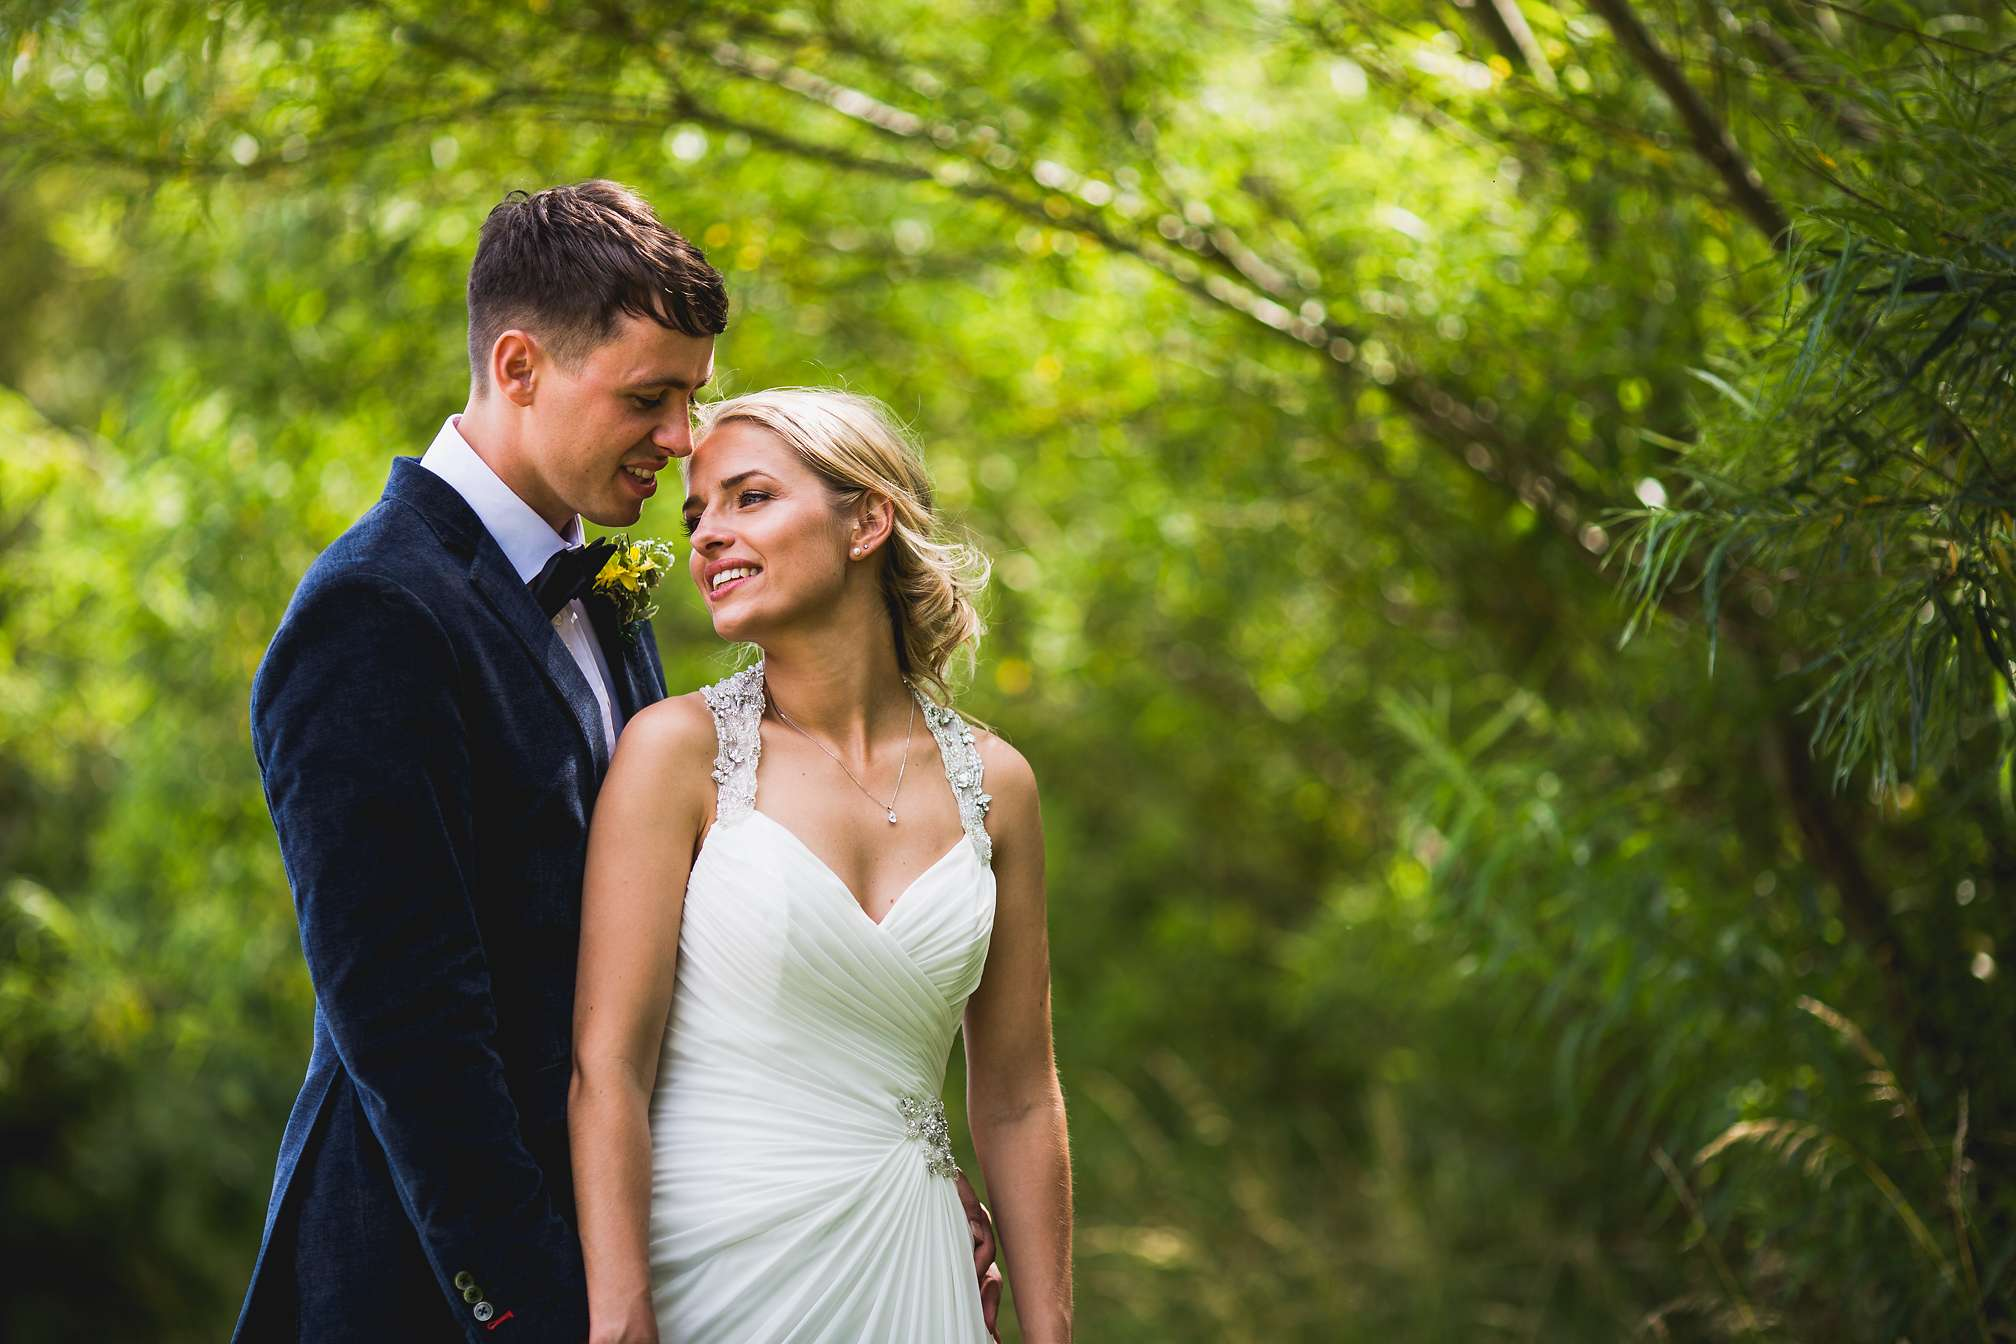 Rachel and Sean - Beautiful Wedding Portrait